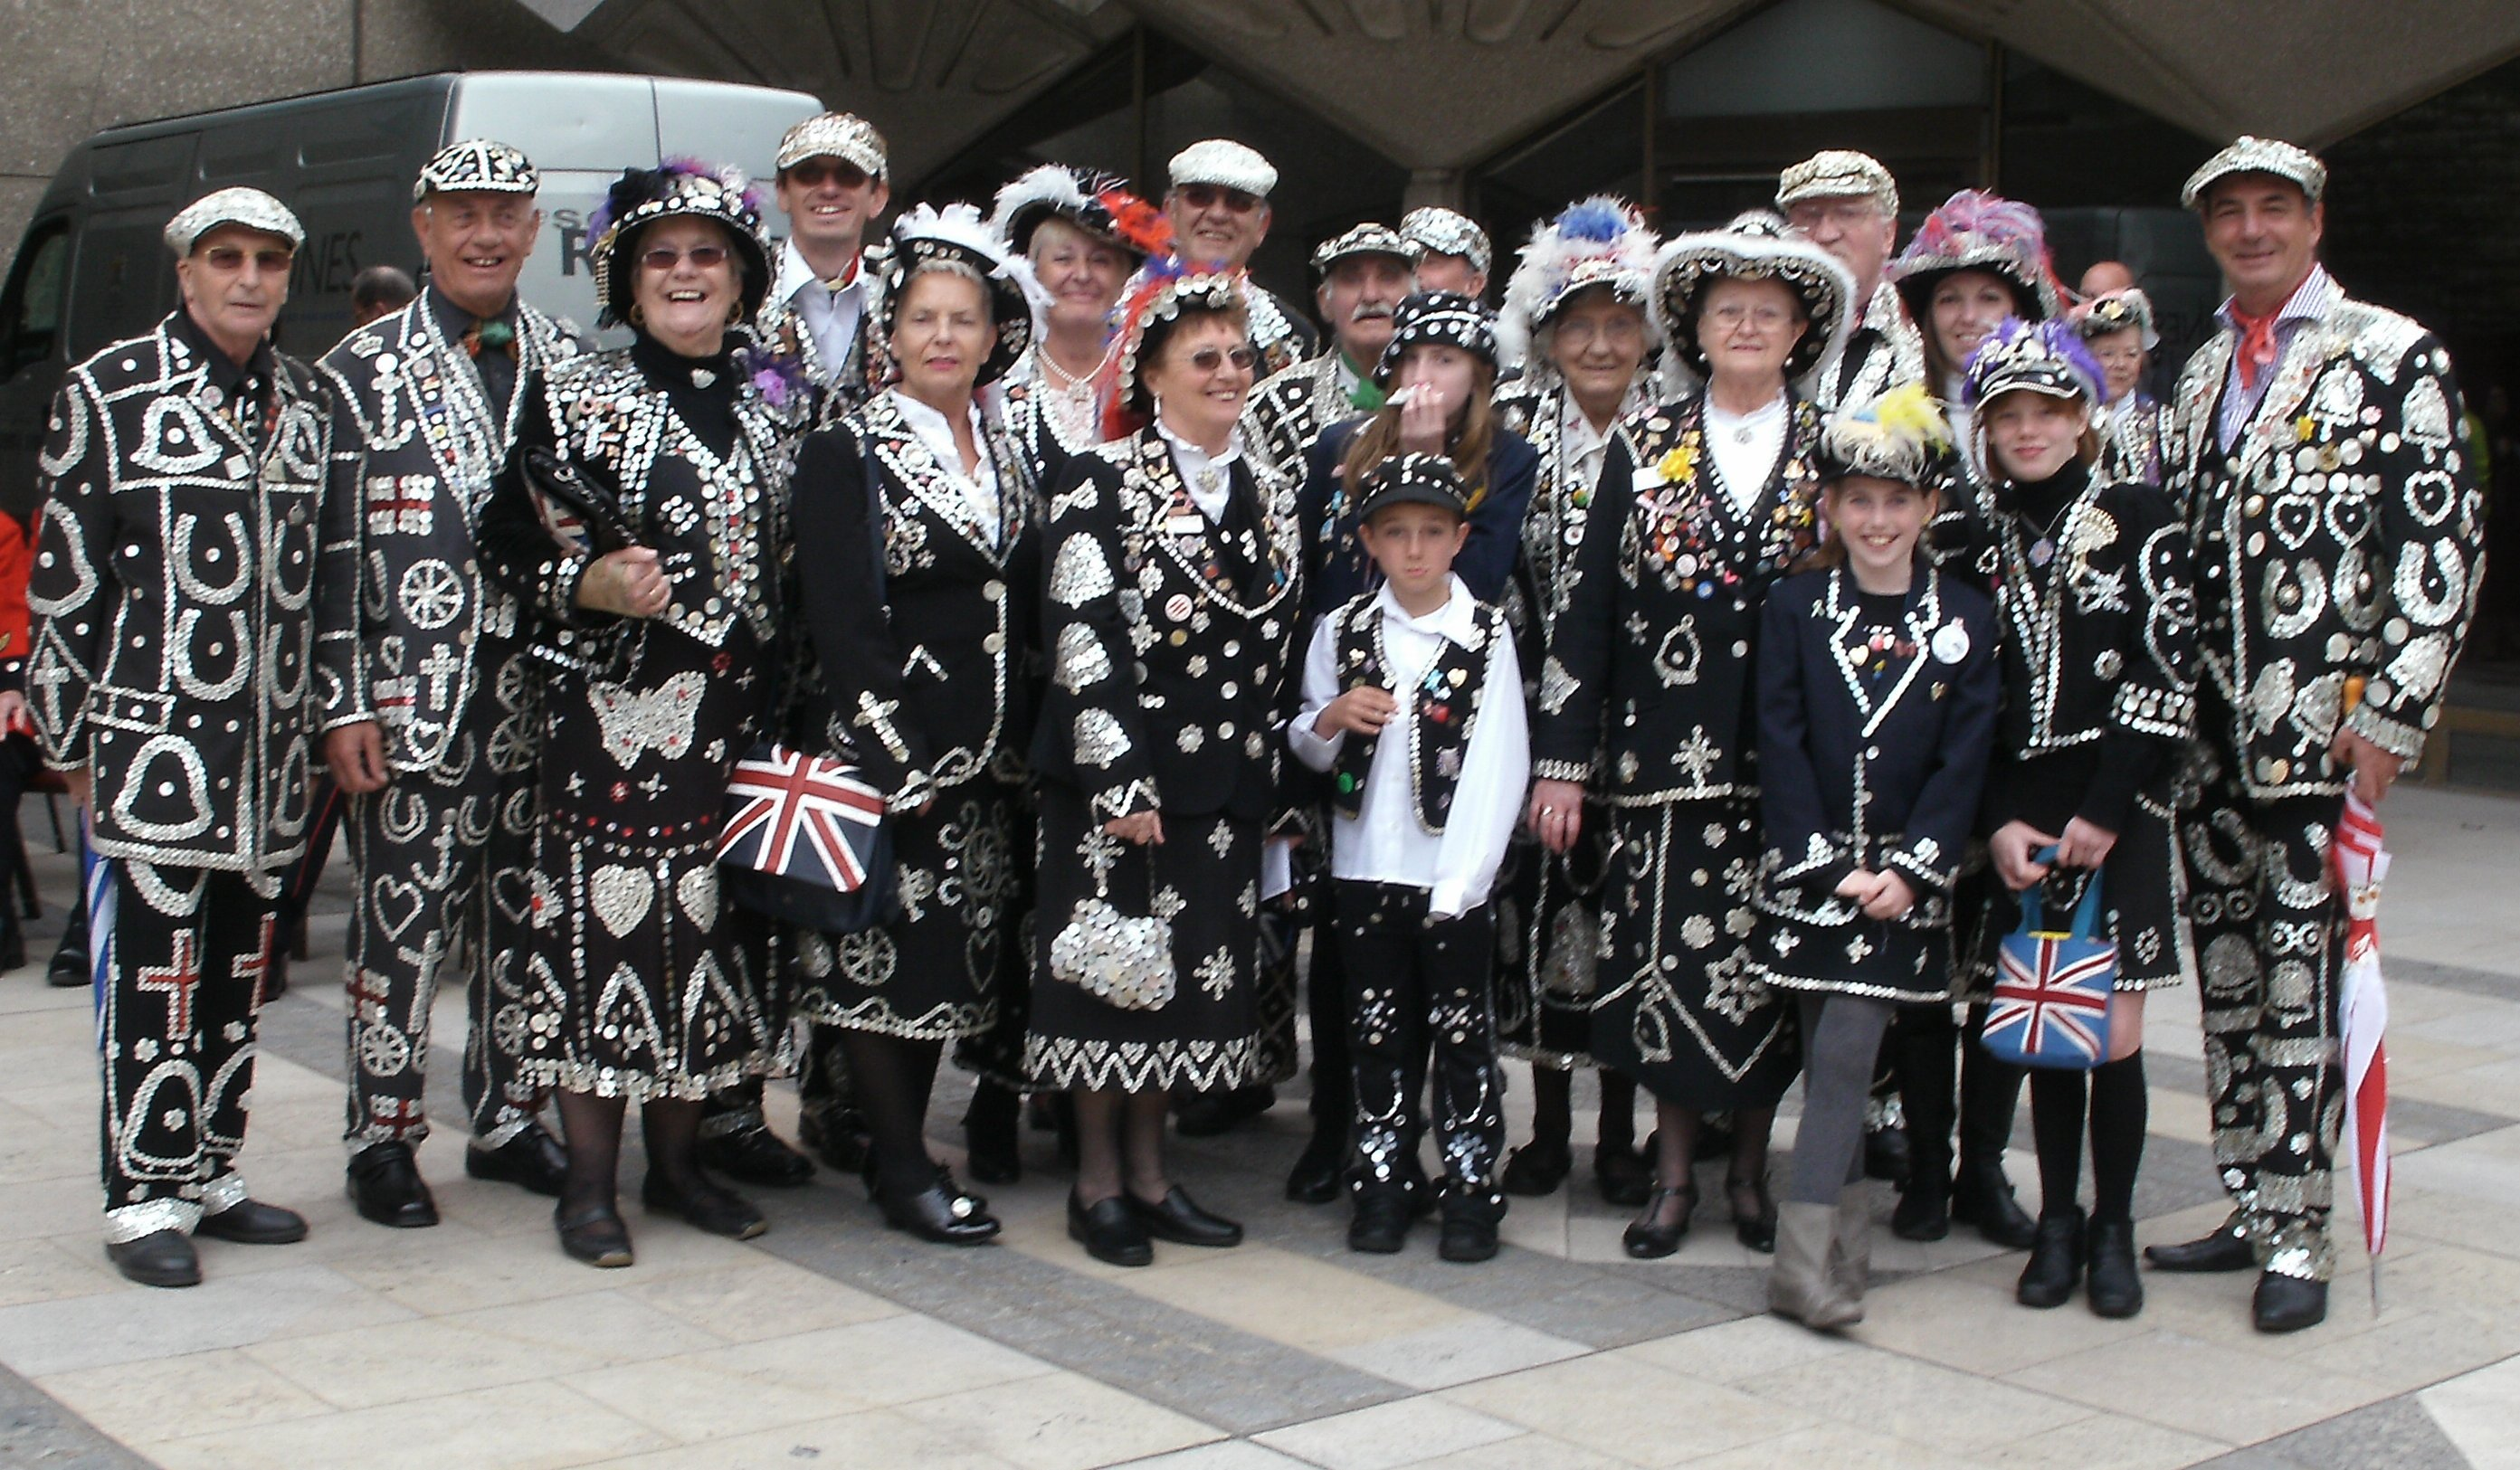 King Of Cars >> Pearly Kings and Queens Harvest Festival 2012 - London